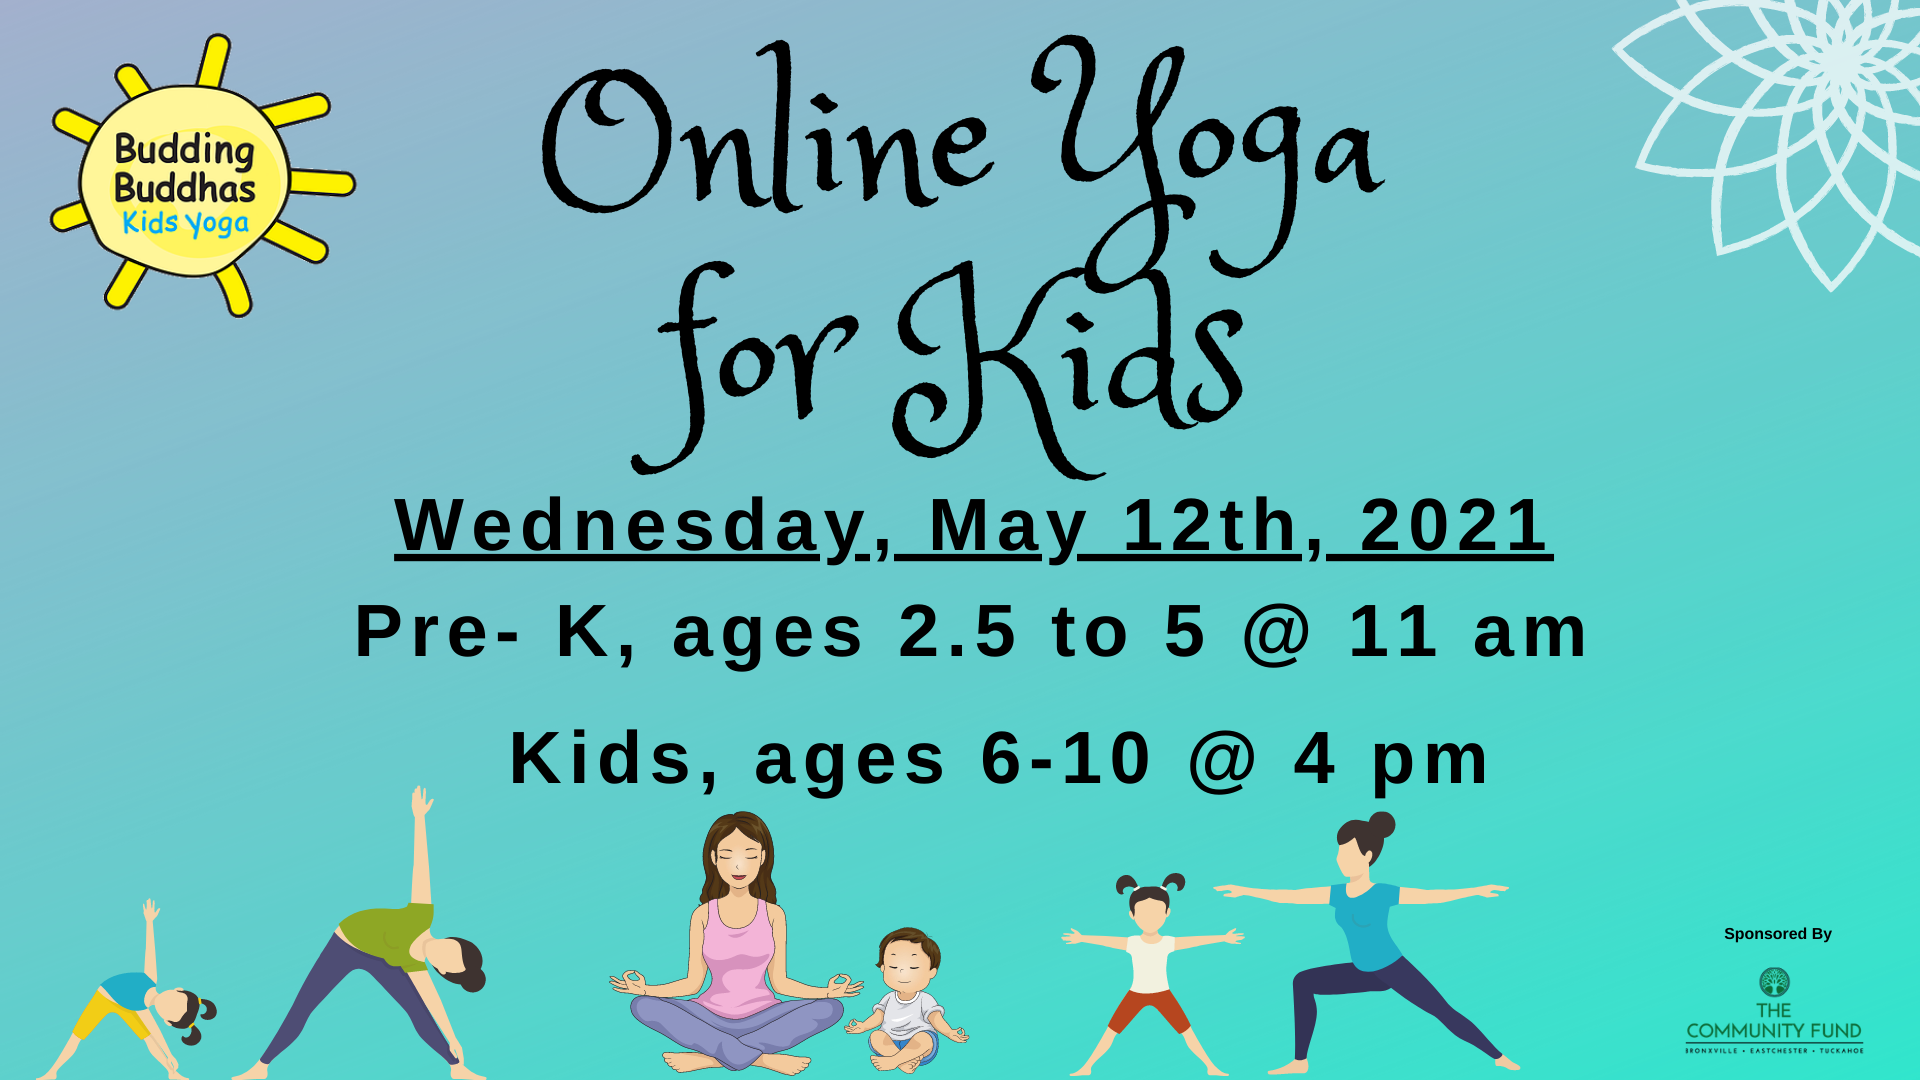 Online Pre-K Yoga with Budding Buddhas, Ages 2.5-5 years